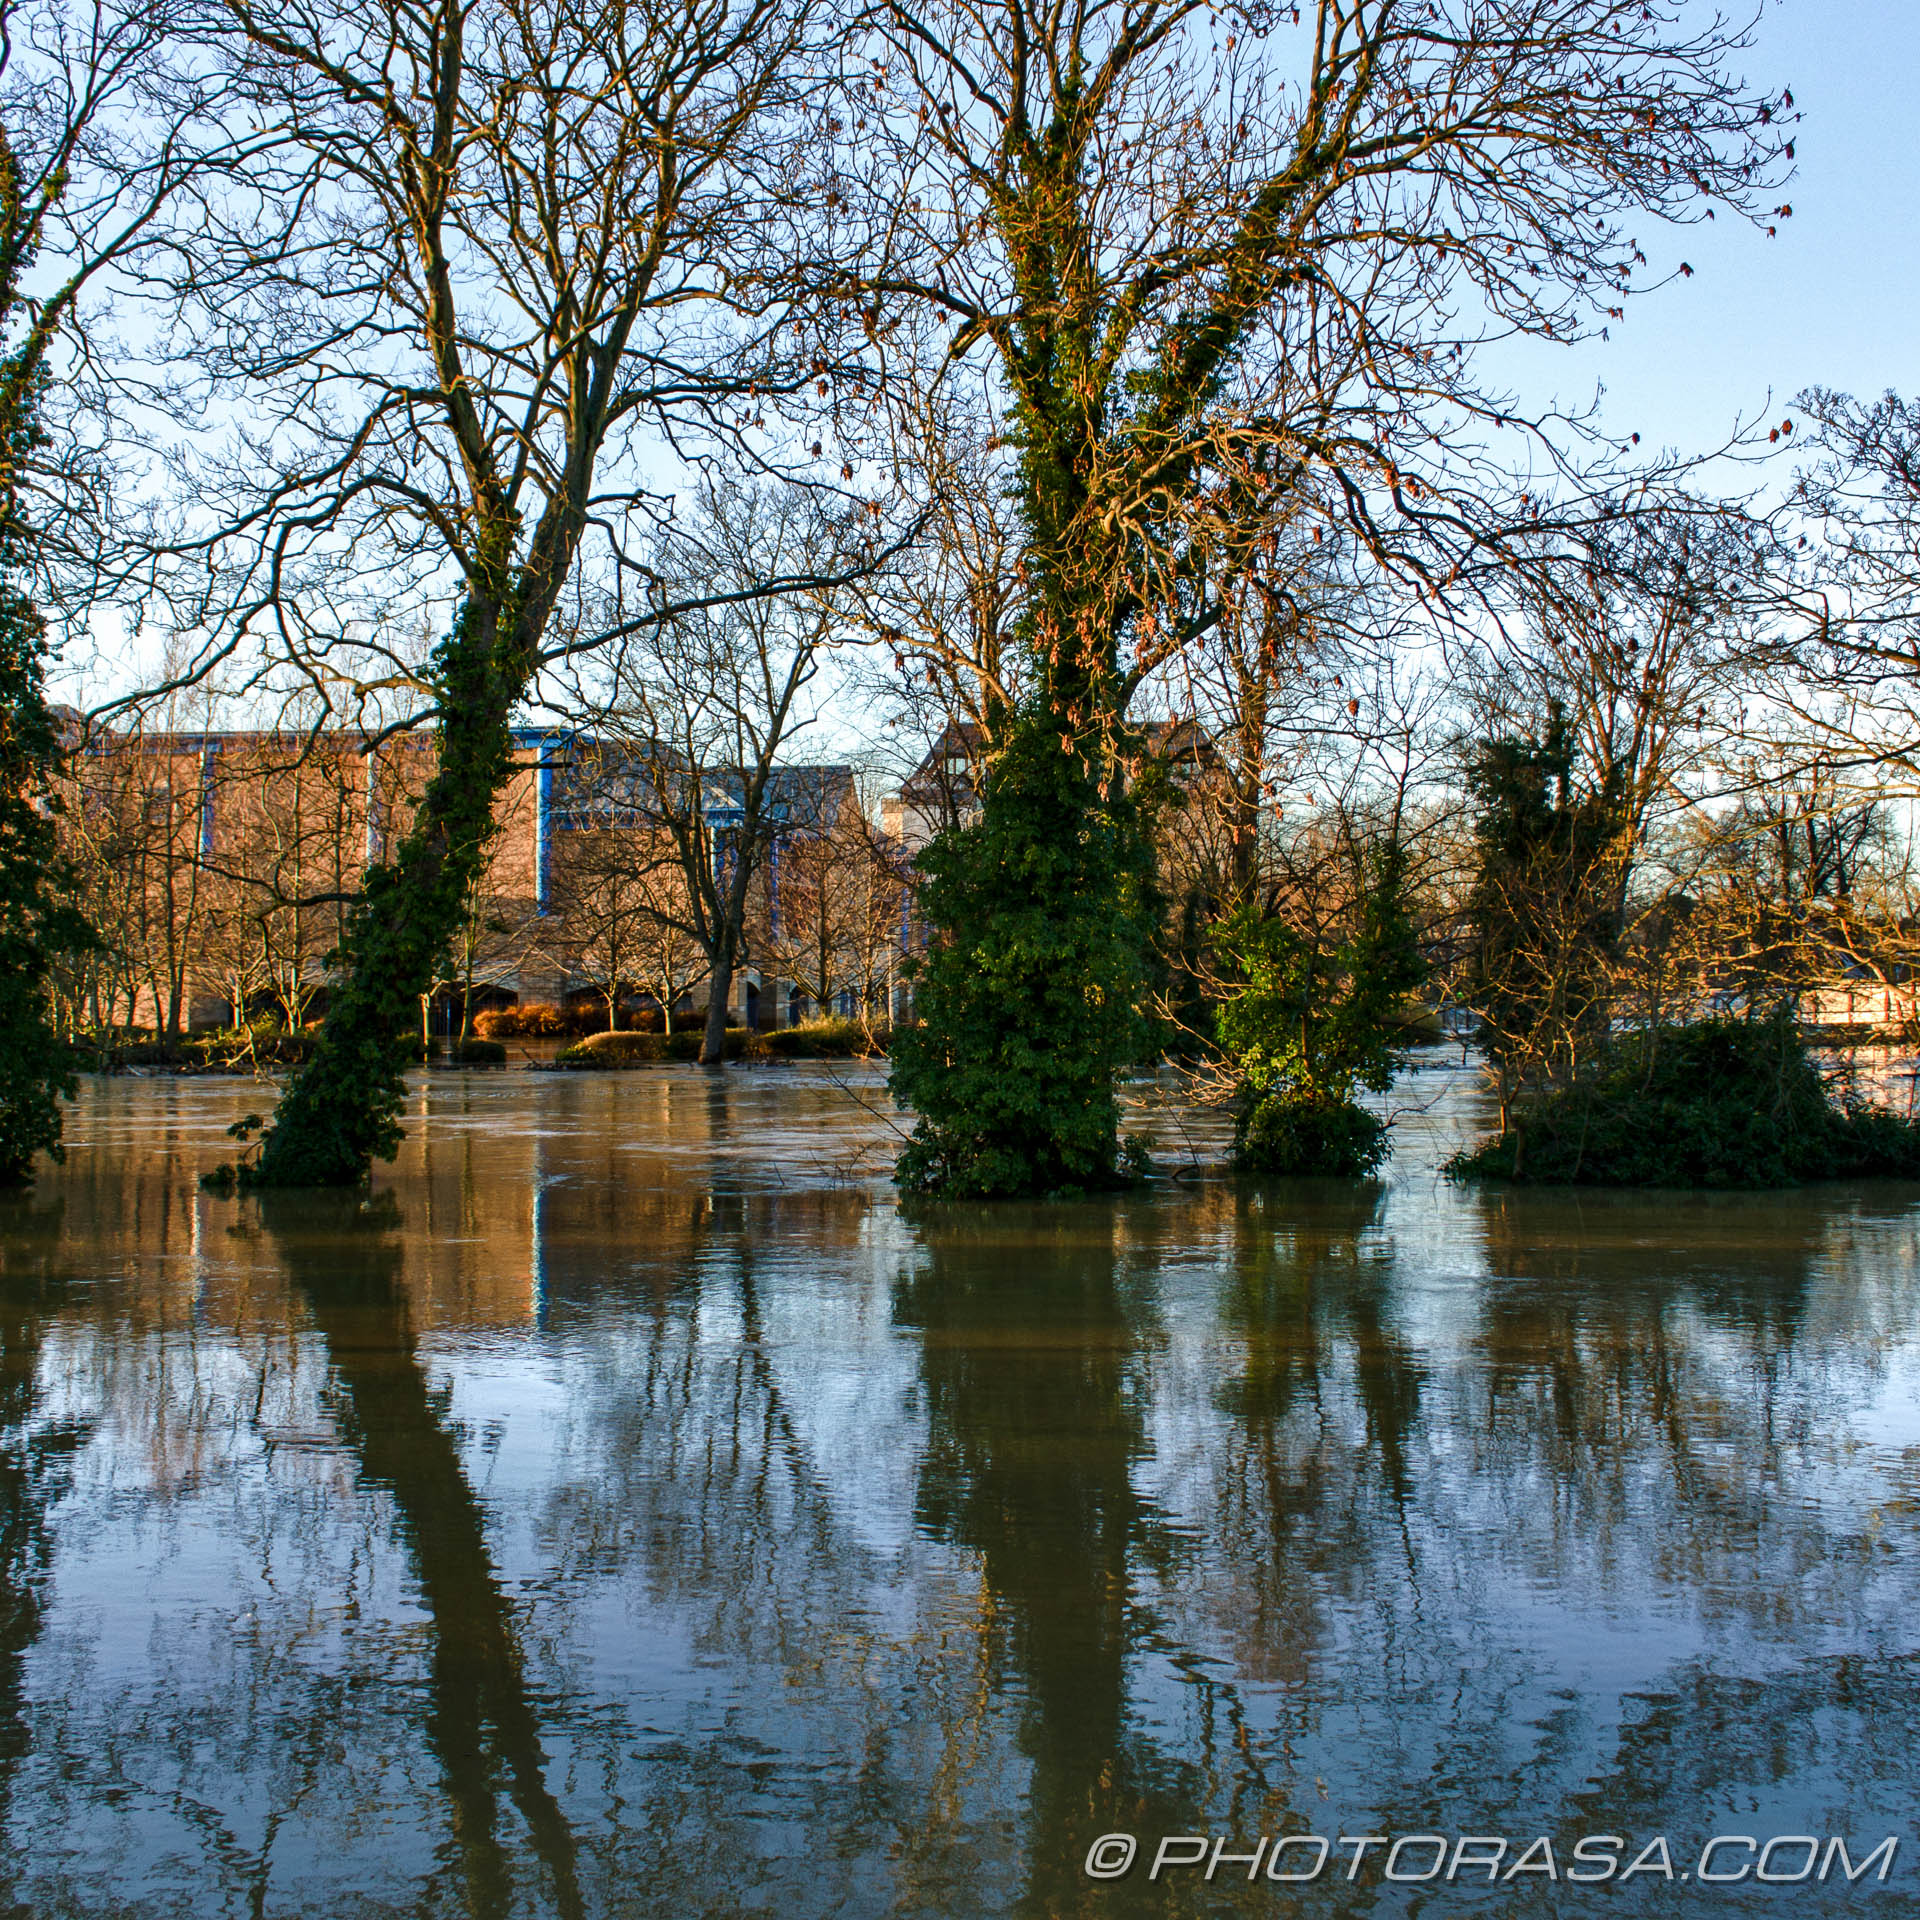 http://photorasa.com/wet-xmas-maidstone-river-medway-floods-town-centre/lockmeadow-through-trees-and-flooded-medway/